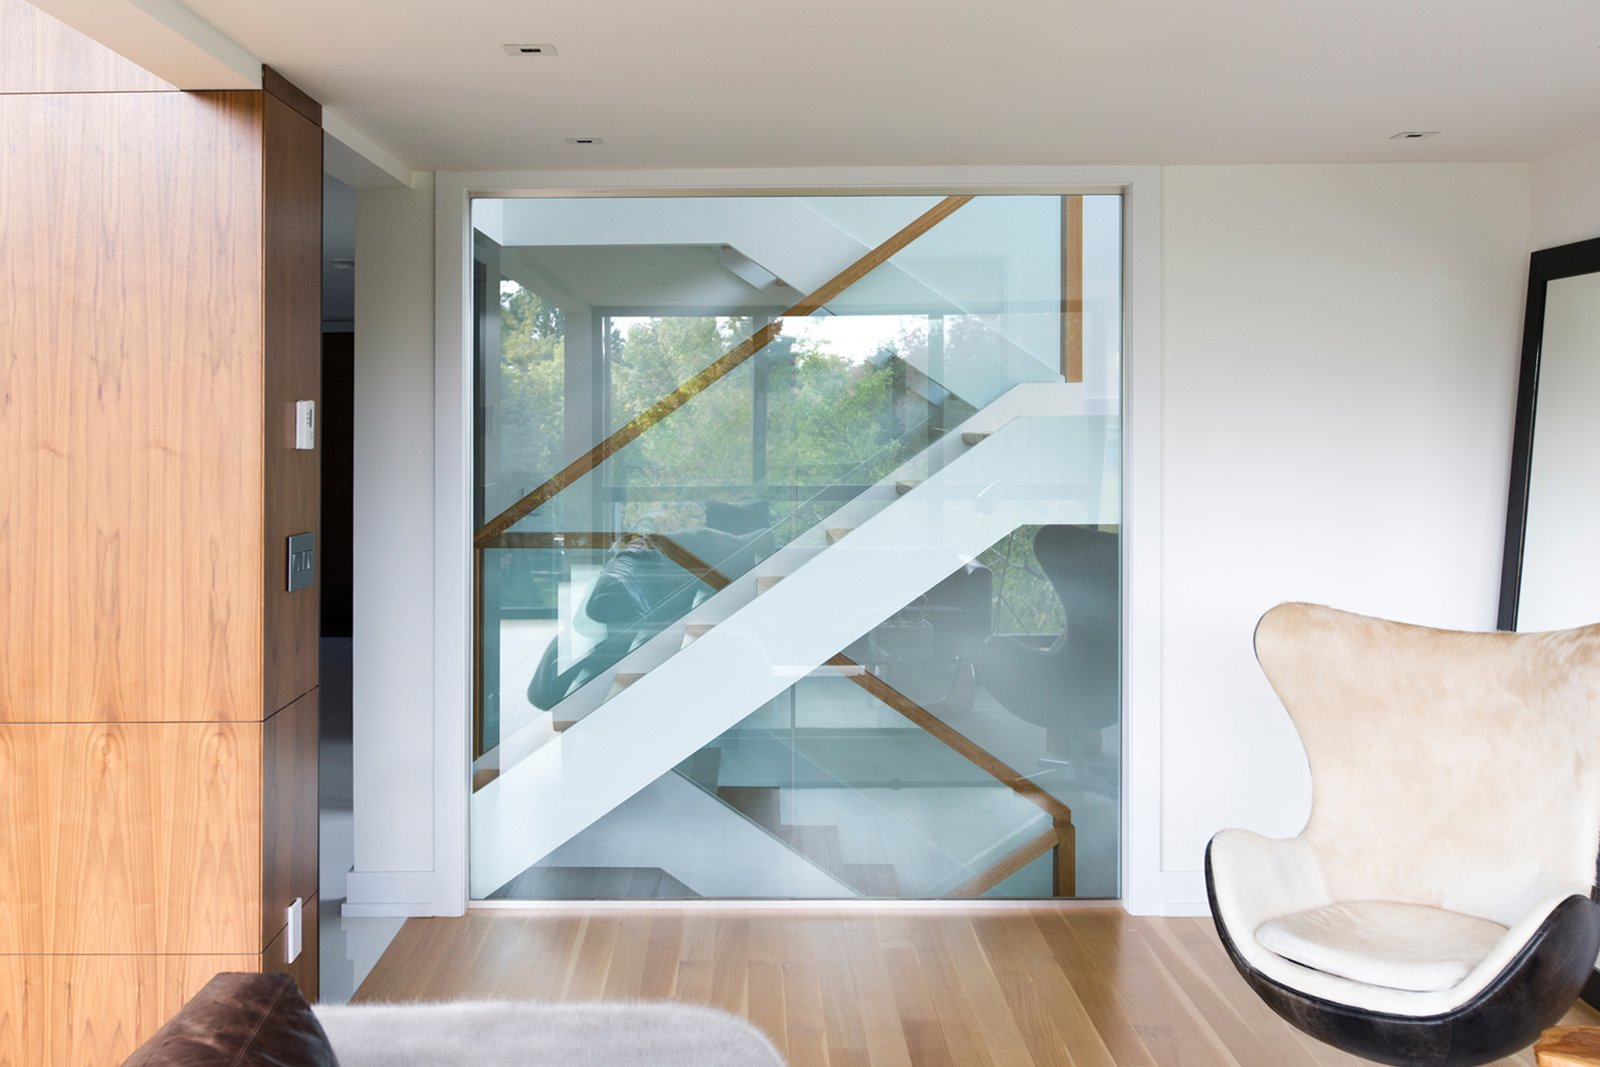 Beyond the custom glass wall in the family room is an open riser oak staircase, with glass guards and a wood handrail.  Ravine House by FrankFranco Architects